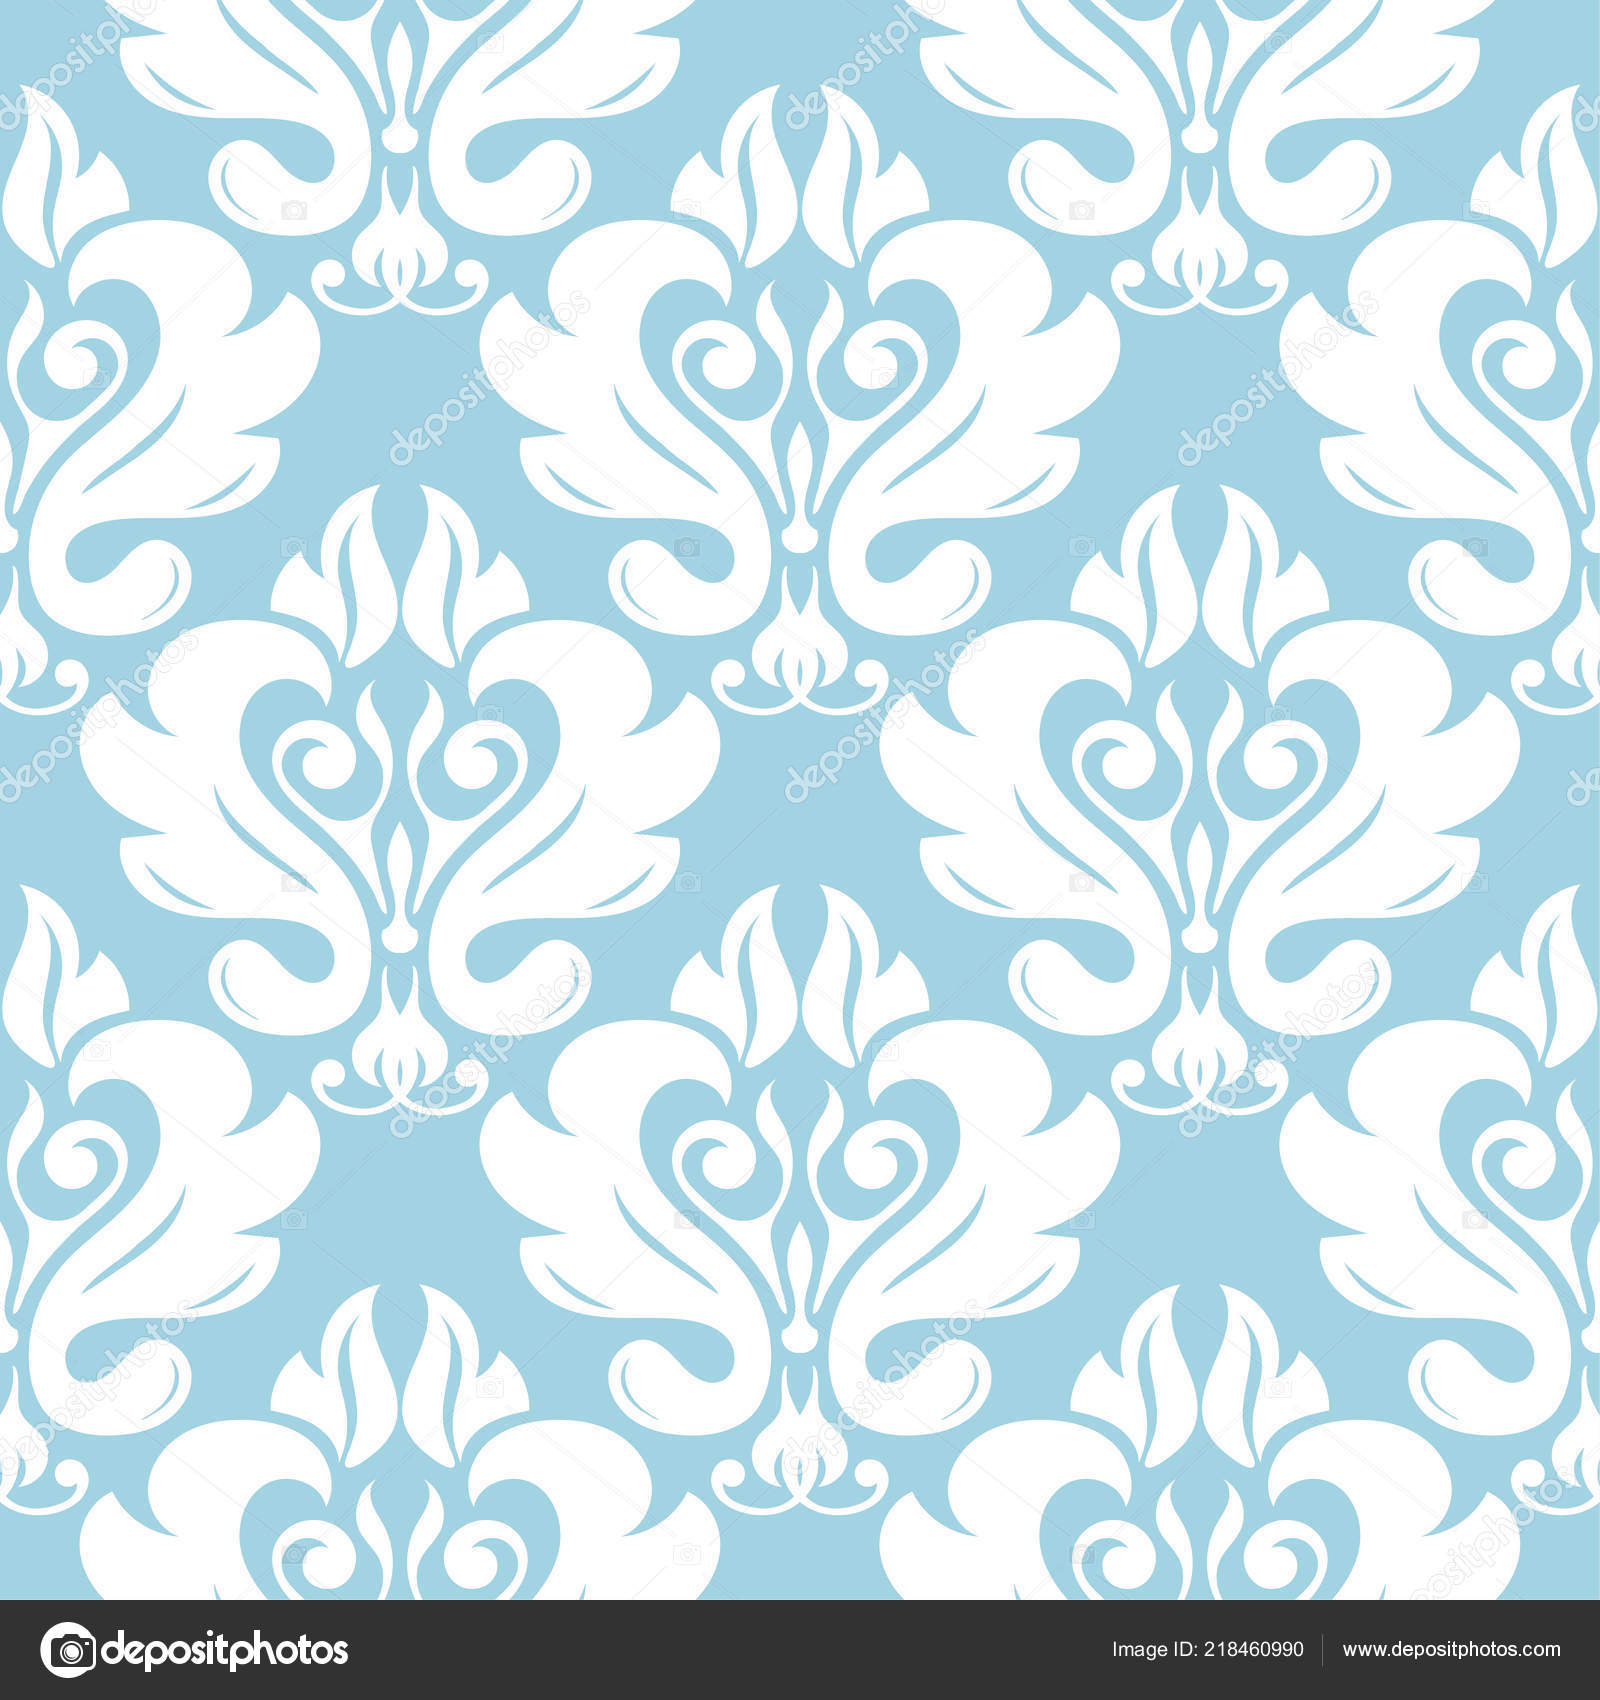 Blue White Floral Ornament Seamless Pattern Textile Wallpapers